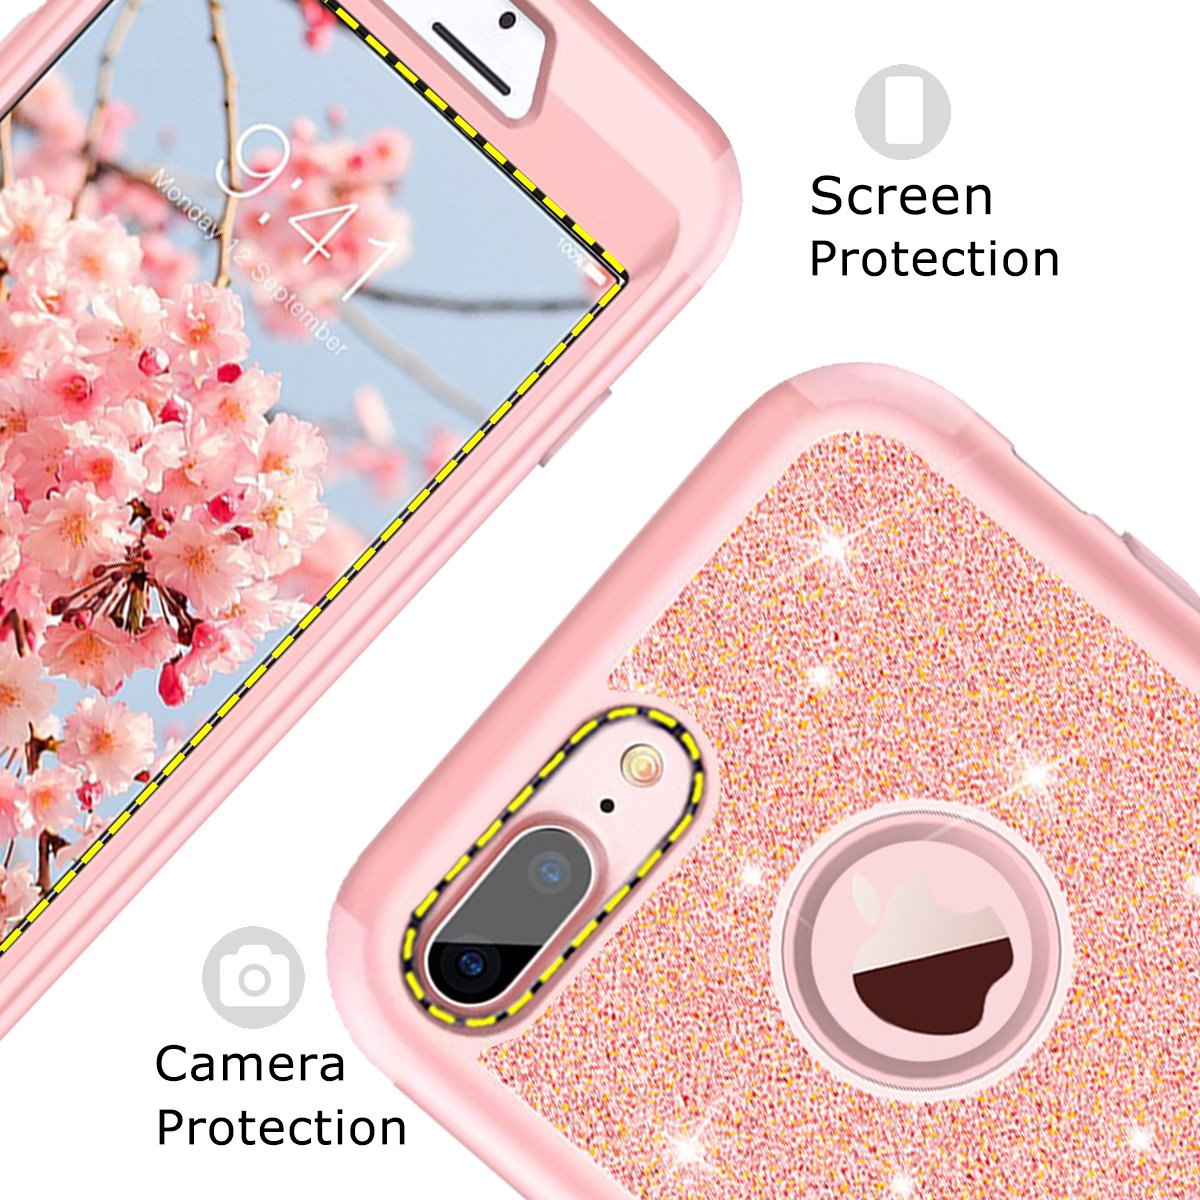 iPhone 7 Plus Case Rose Gold for Women Girls iPhone 8 Plus Case Tobomoco Shockproof Drop Protection 3 in 1 Glitter Bling Sparkly Hybrid Hard PC Soft Silicone Case for iPhone 7plus 5.5